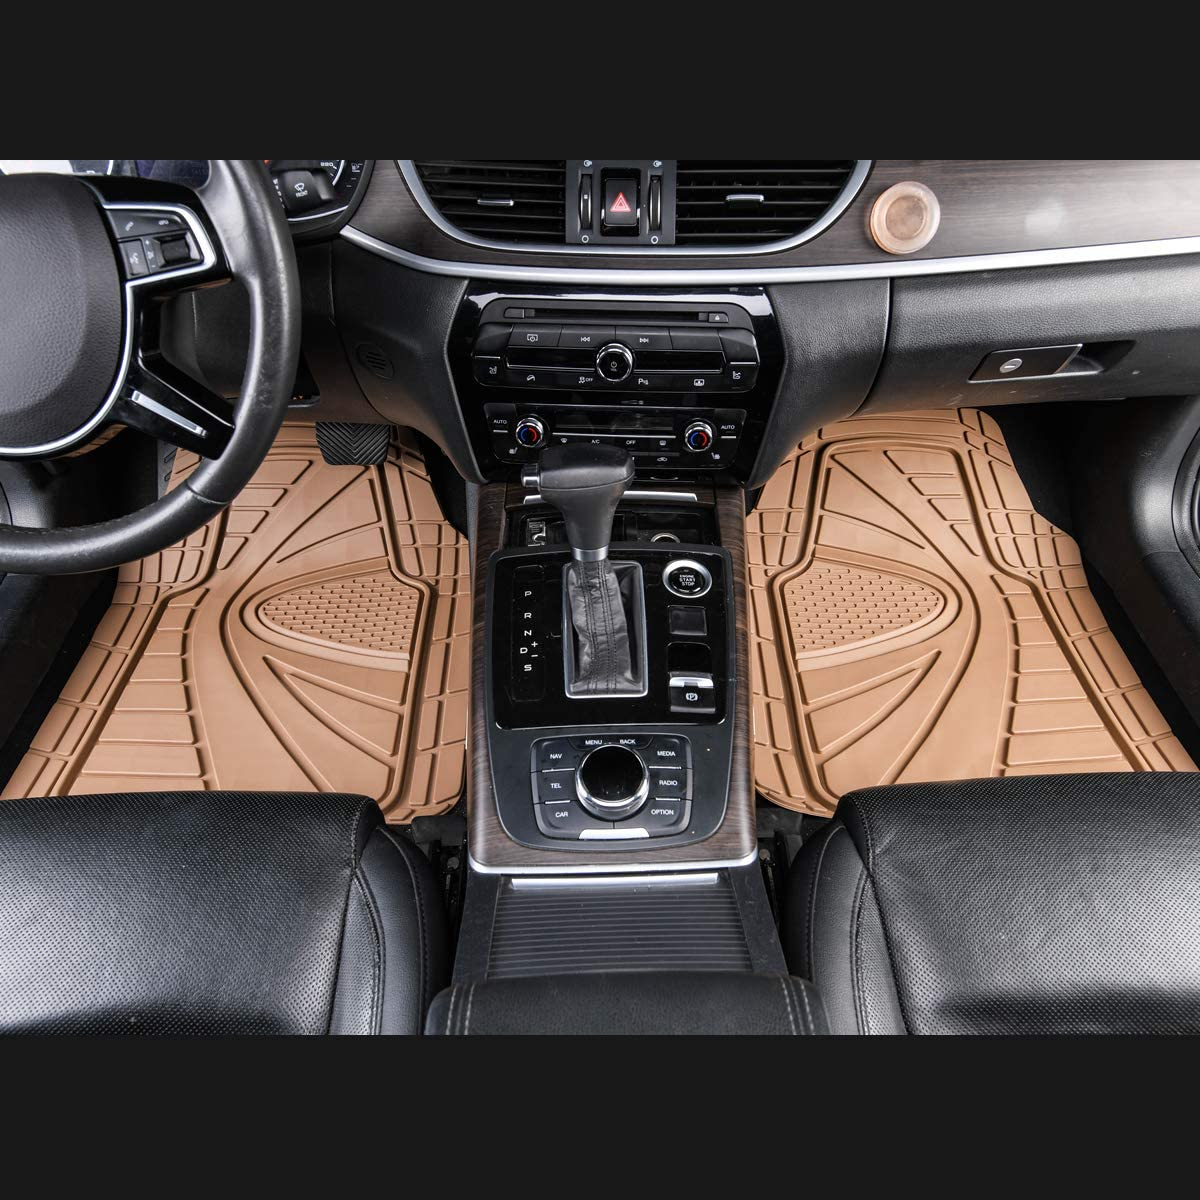 CAR-GRAND Universal Fit Heavy Duty All Weather Waterproof Rubber Car Floor Mats Front/&Rear 4 pieces Set